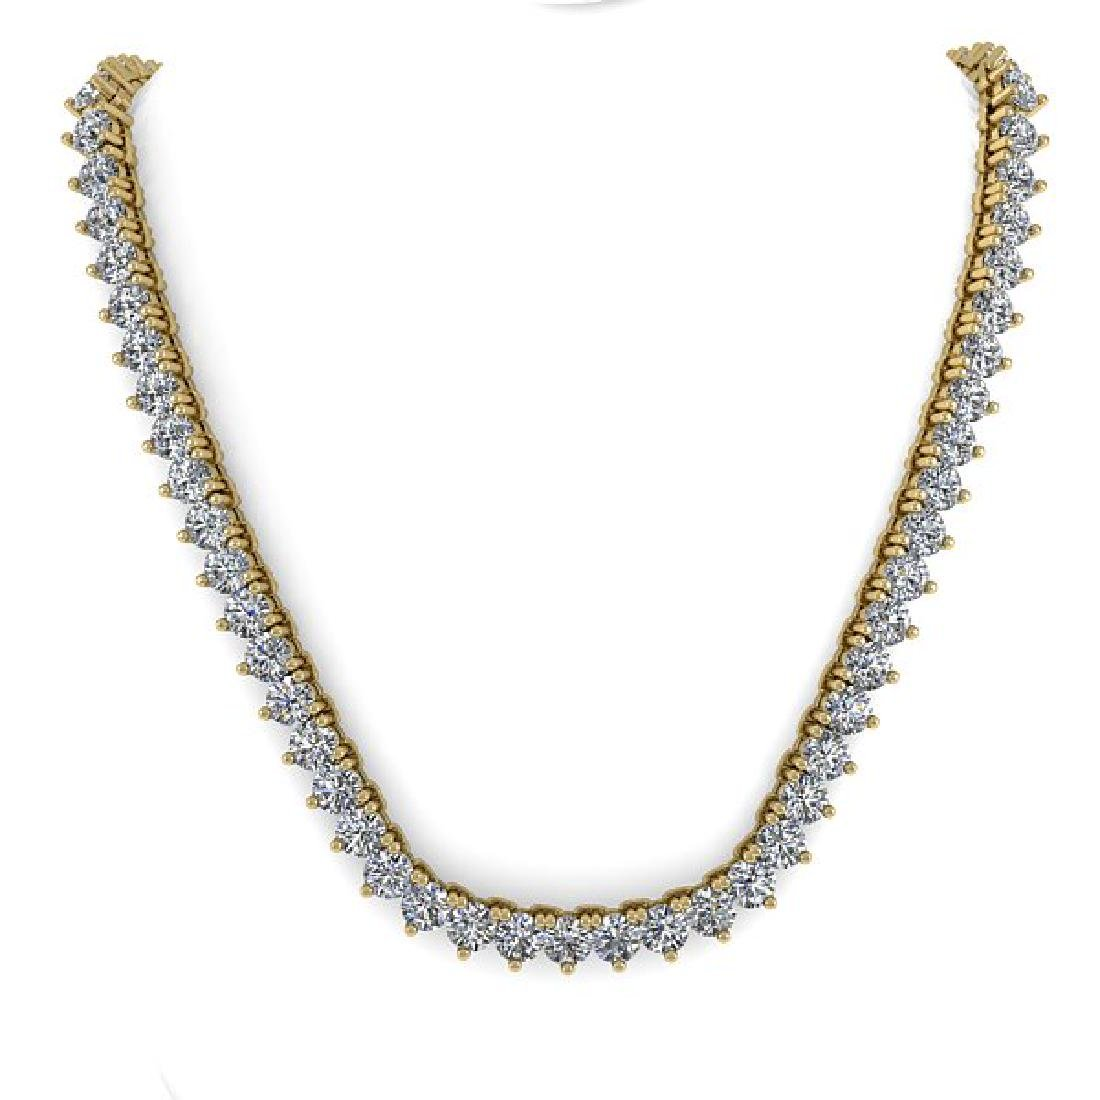 33 CTW Solitaire SI Diamond Necklace 14K Yellow Gold - 3